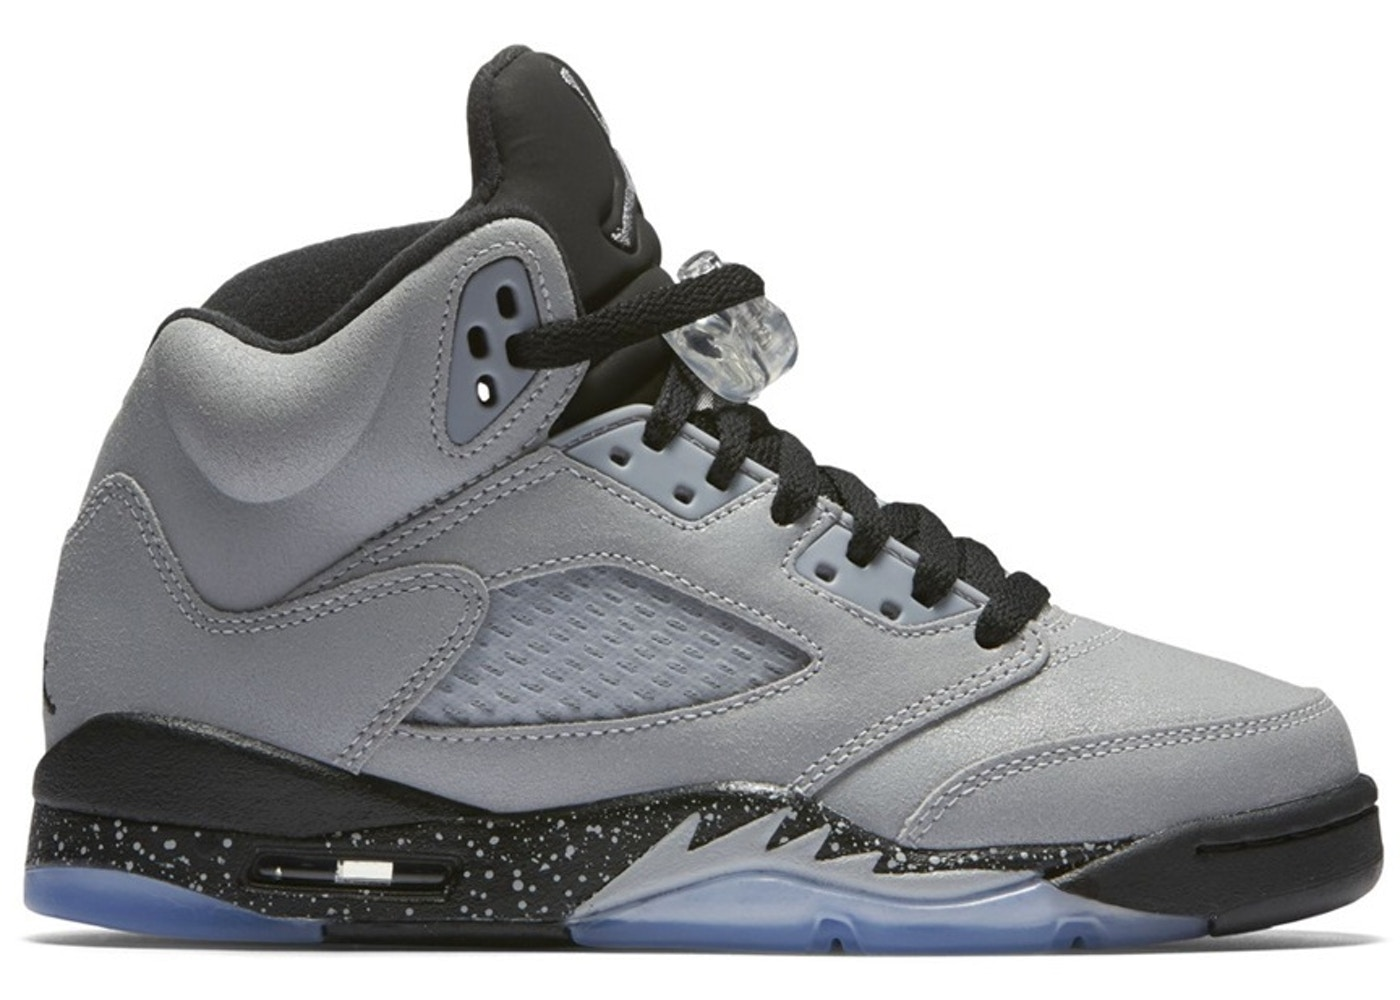 separation shoes 24623 98b5b Jordan 5 Retro Wolf Grey (GS)